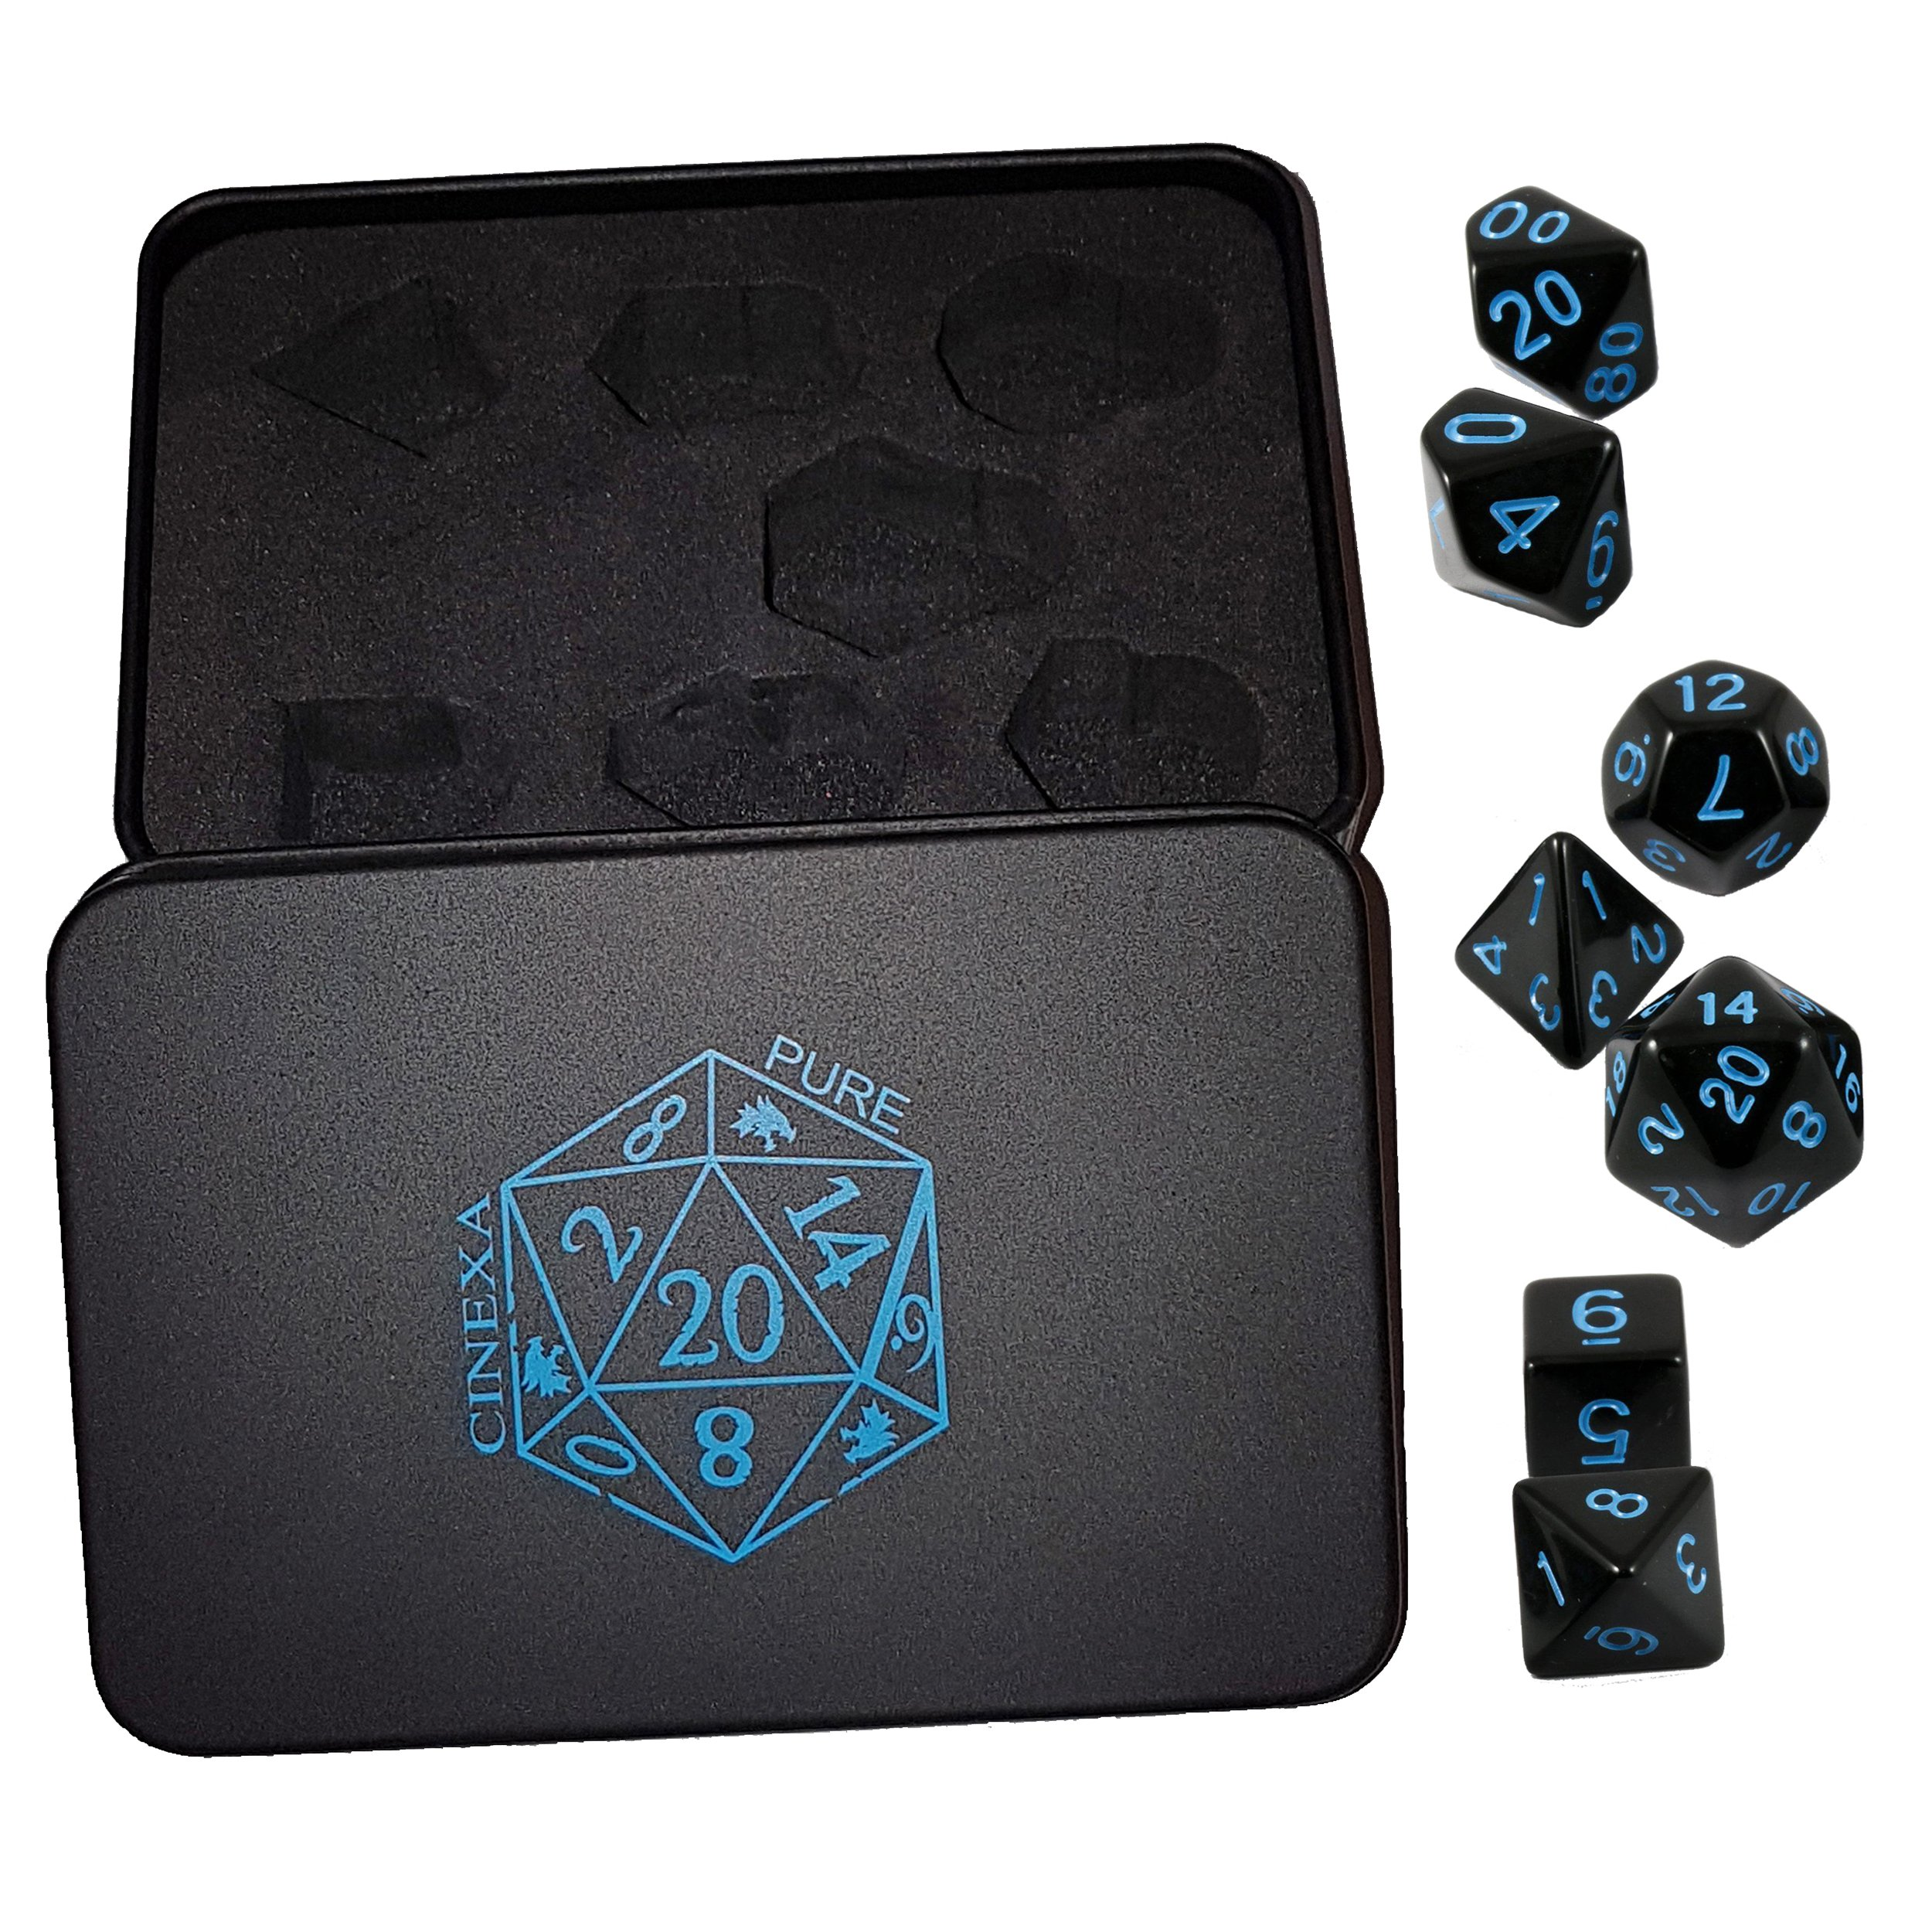 Polyhedral Metal Dice 7 Piece Set, Black and Bright Blue Numbers, For Dungeons and Dragons, MTG, Pathfinder and other role playing games, In A Collectible Tin, By Cinexa Pure